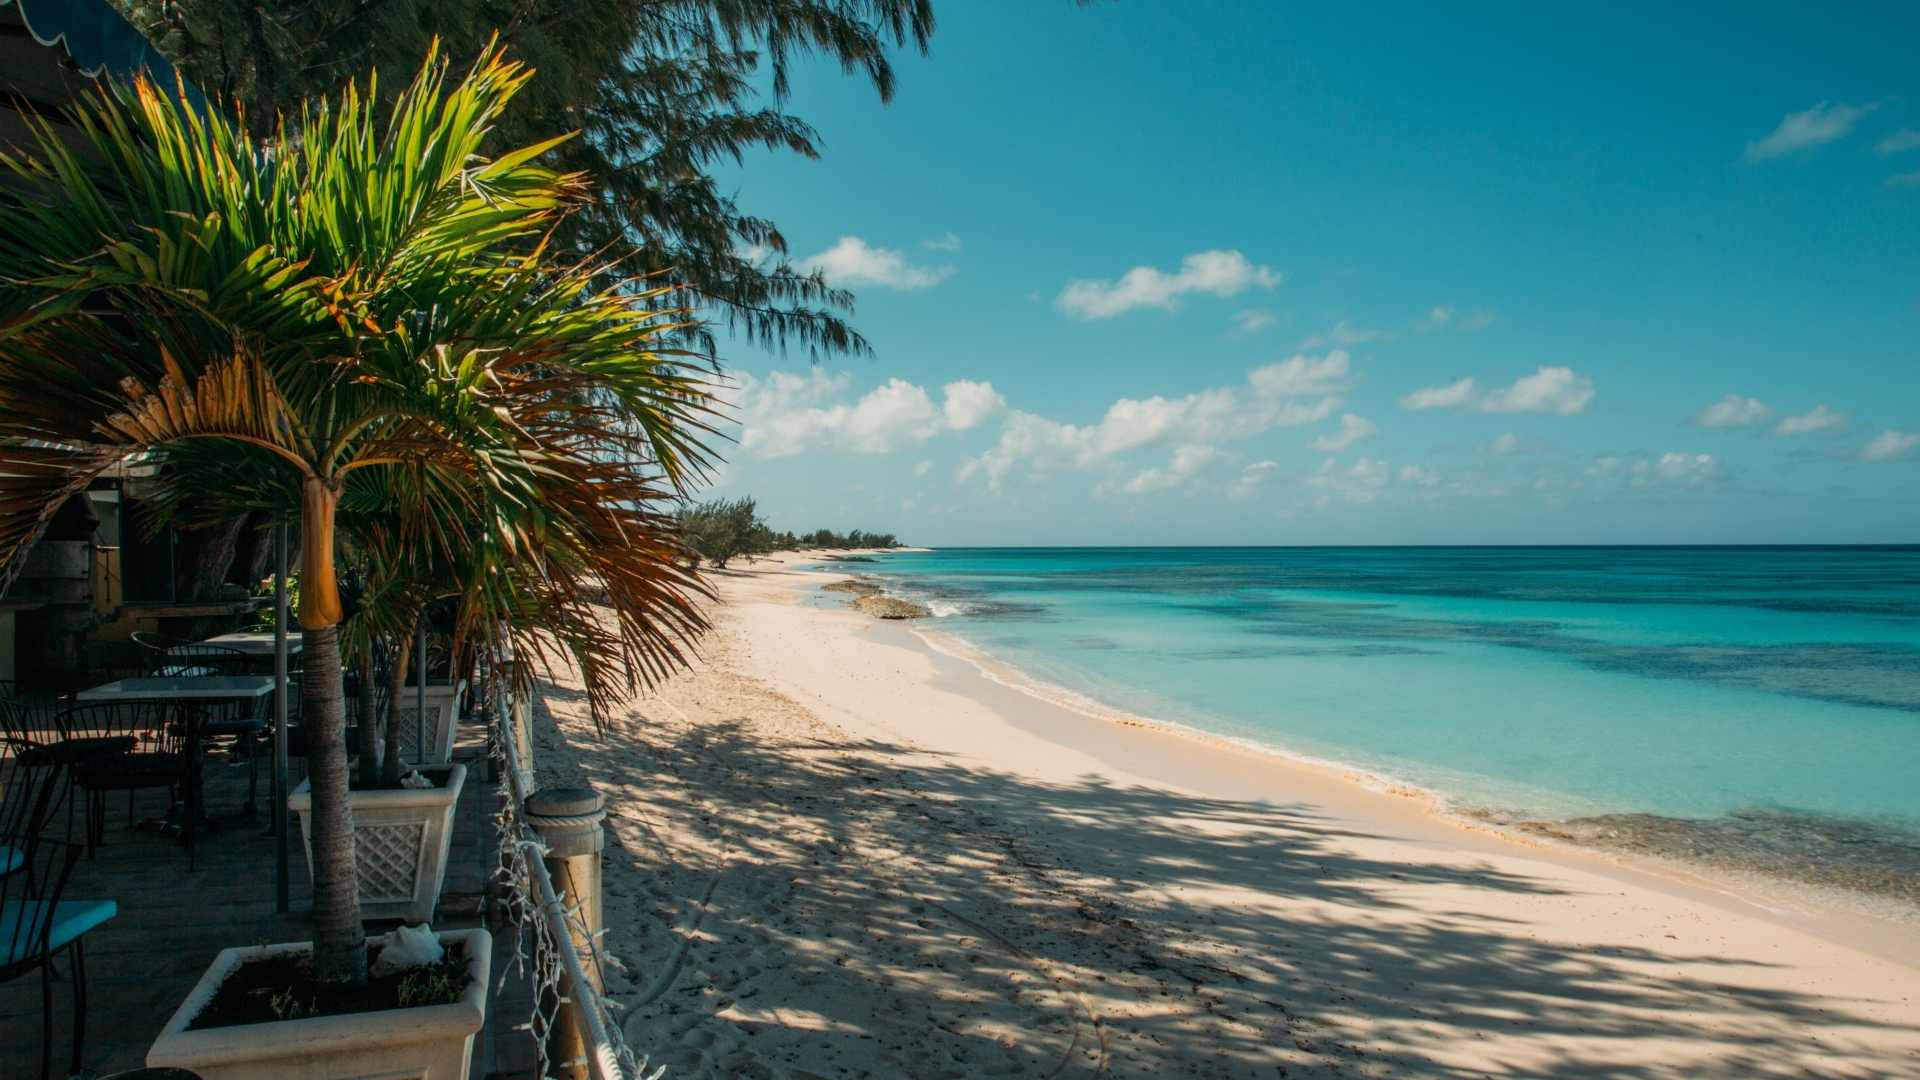 beautiful Grand Turk, Turks and Caicos